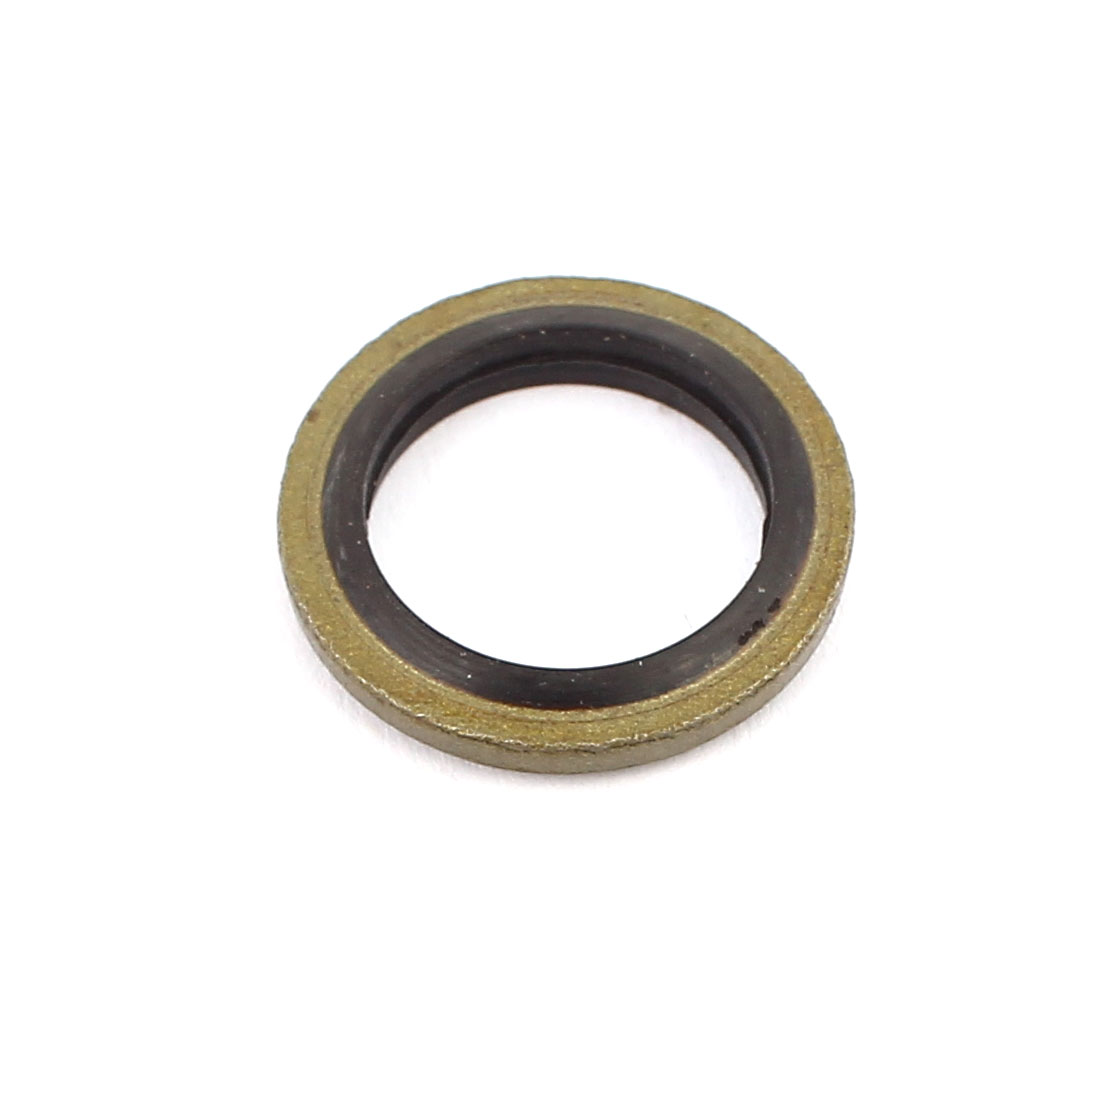 Unique Bargains20pcs 12mmx18mm Rubber Metal Combination Ring Resistant Oil Sealing Ring Gasket - image 1 of 2